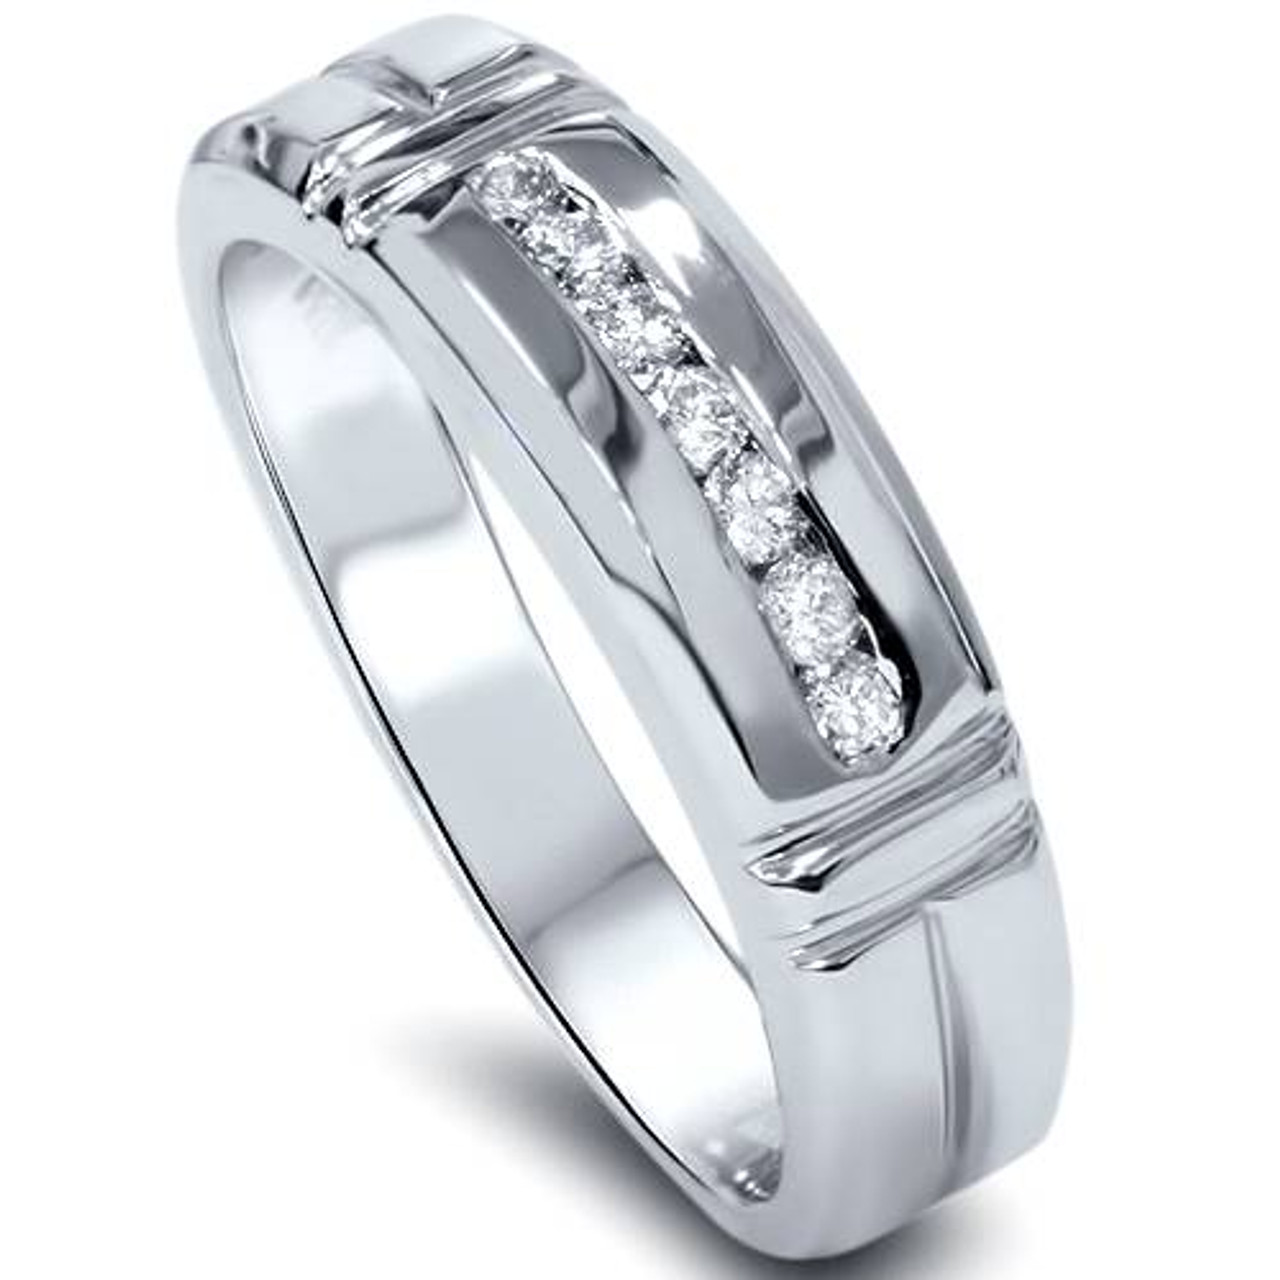 ec80563b3e2 1 4ct Channel Set Diamond Ring 14K White Gold Mens Wedding Band